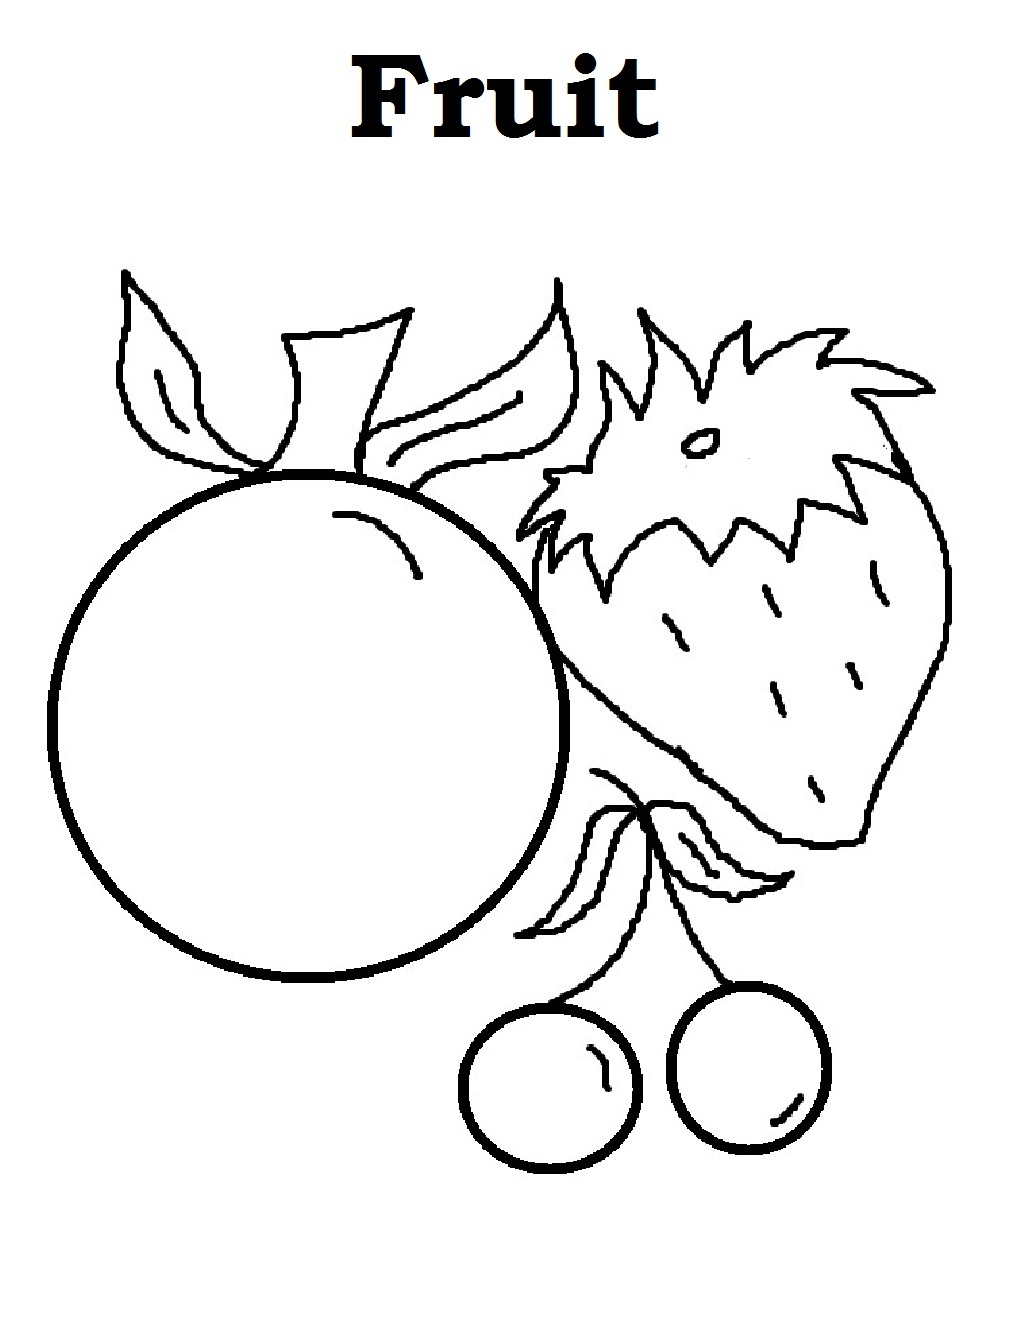 fruit coloring pages free - photo#9